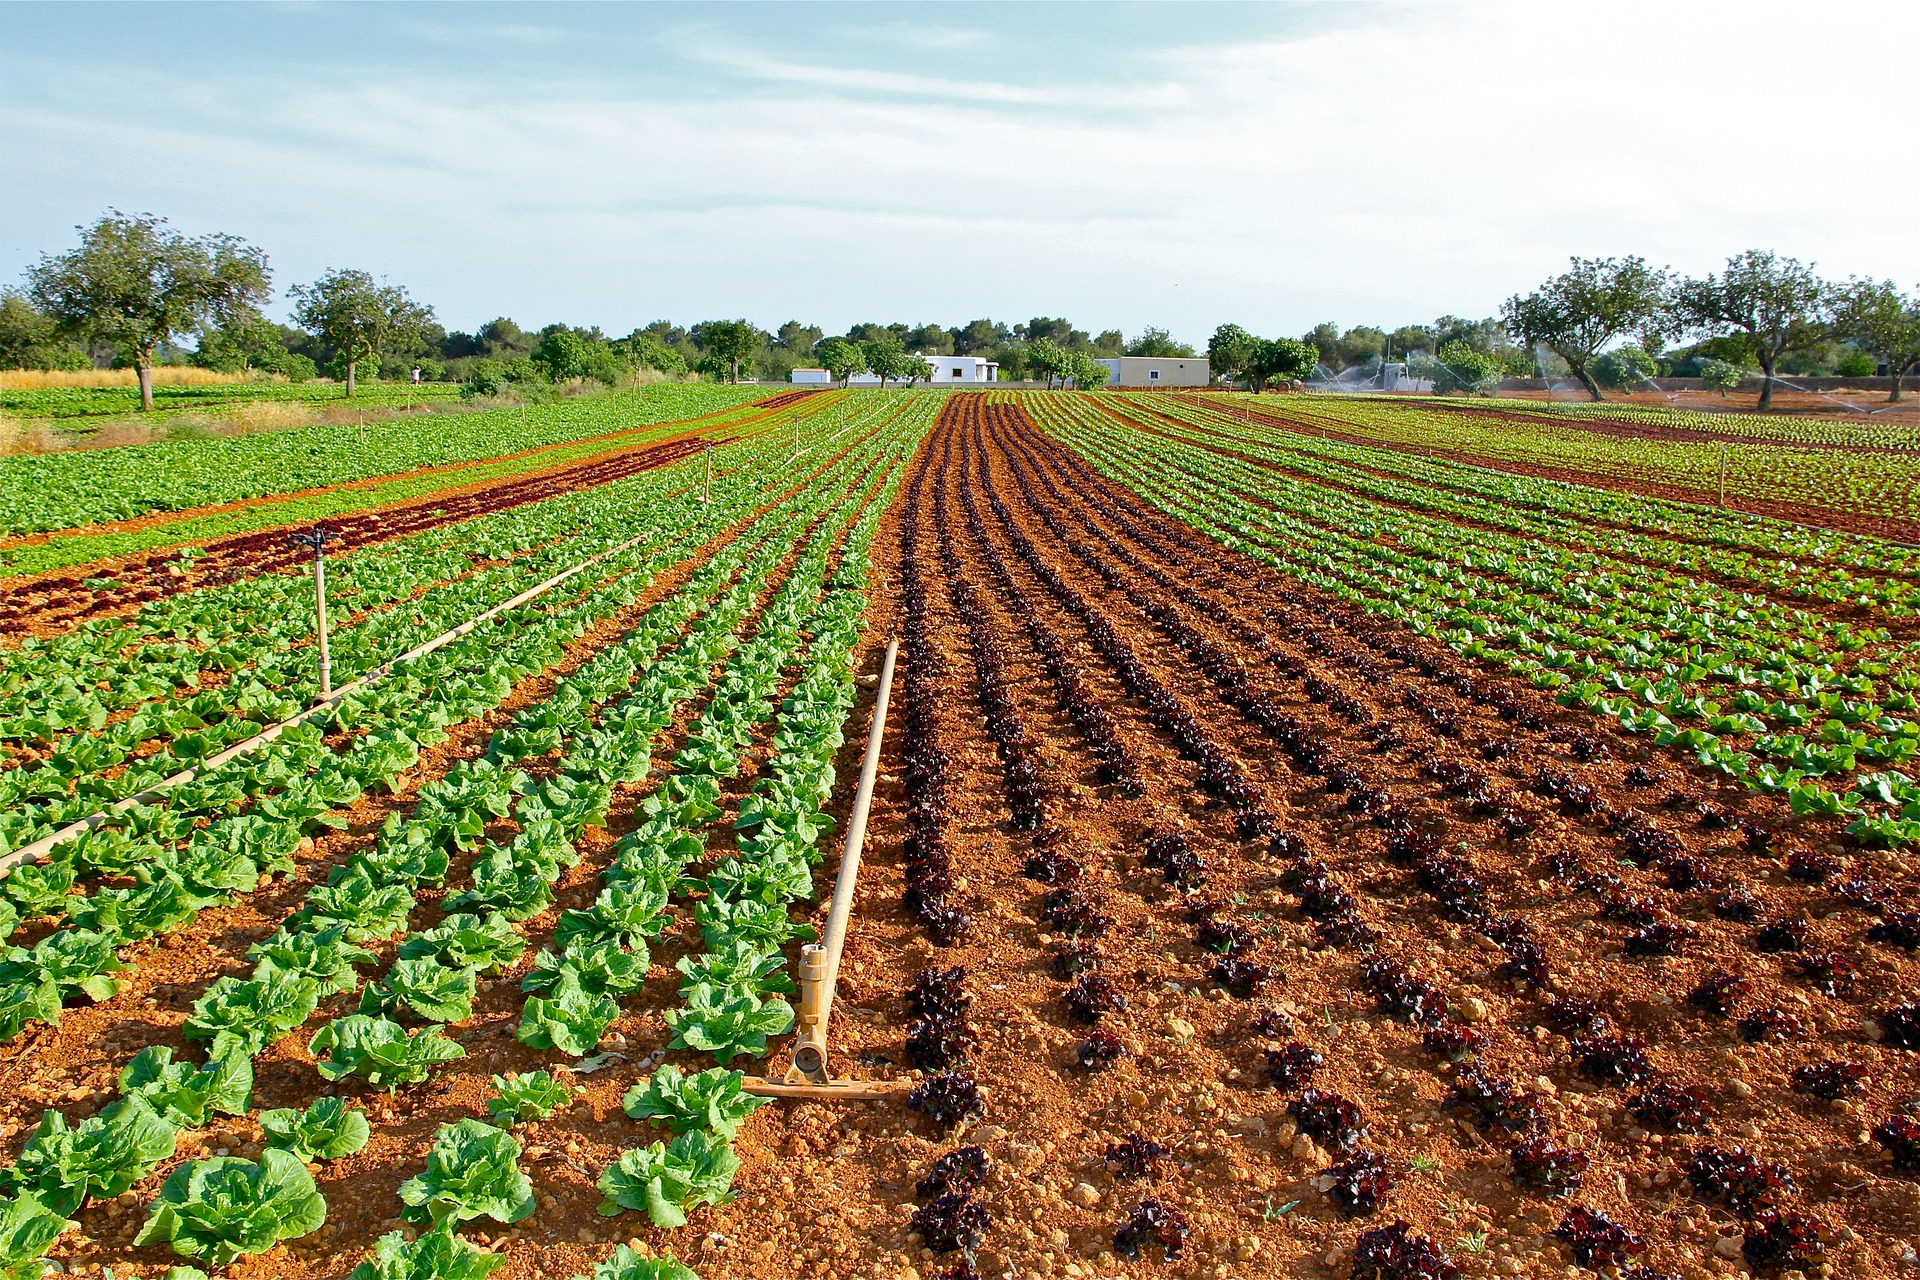 Farm with rows of different vegetables growing.